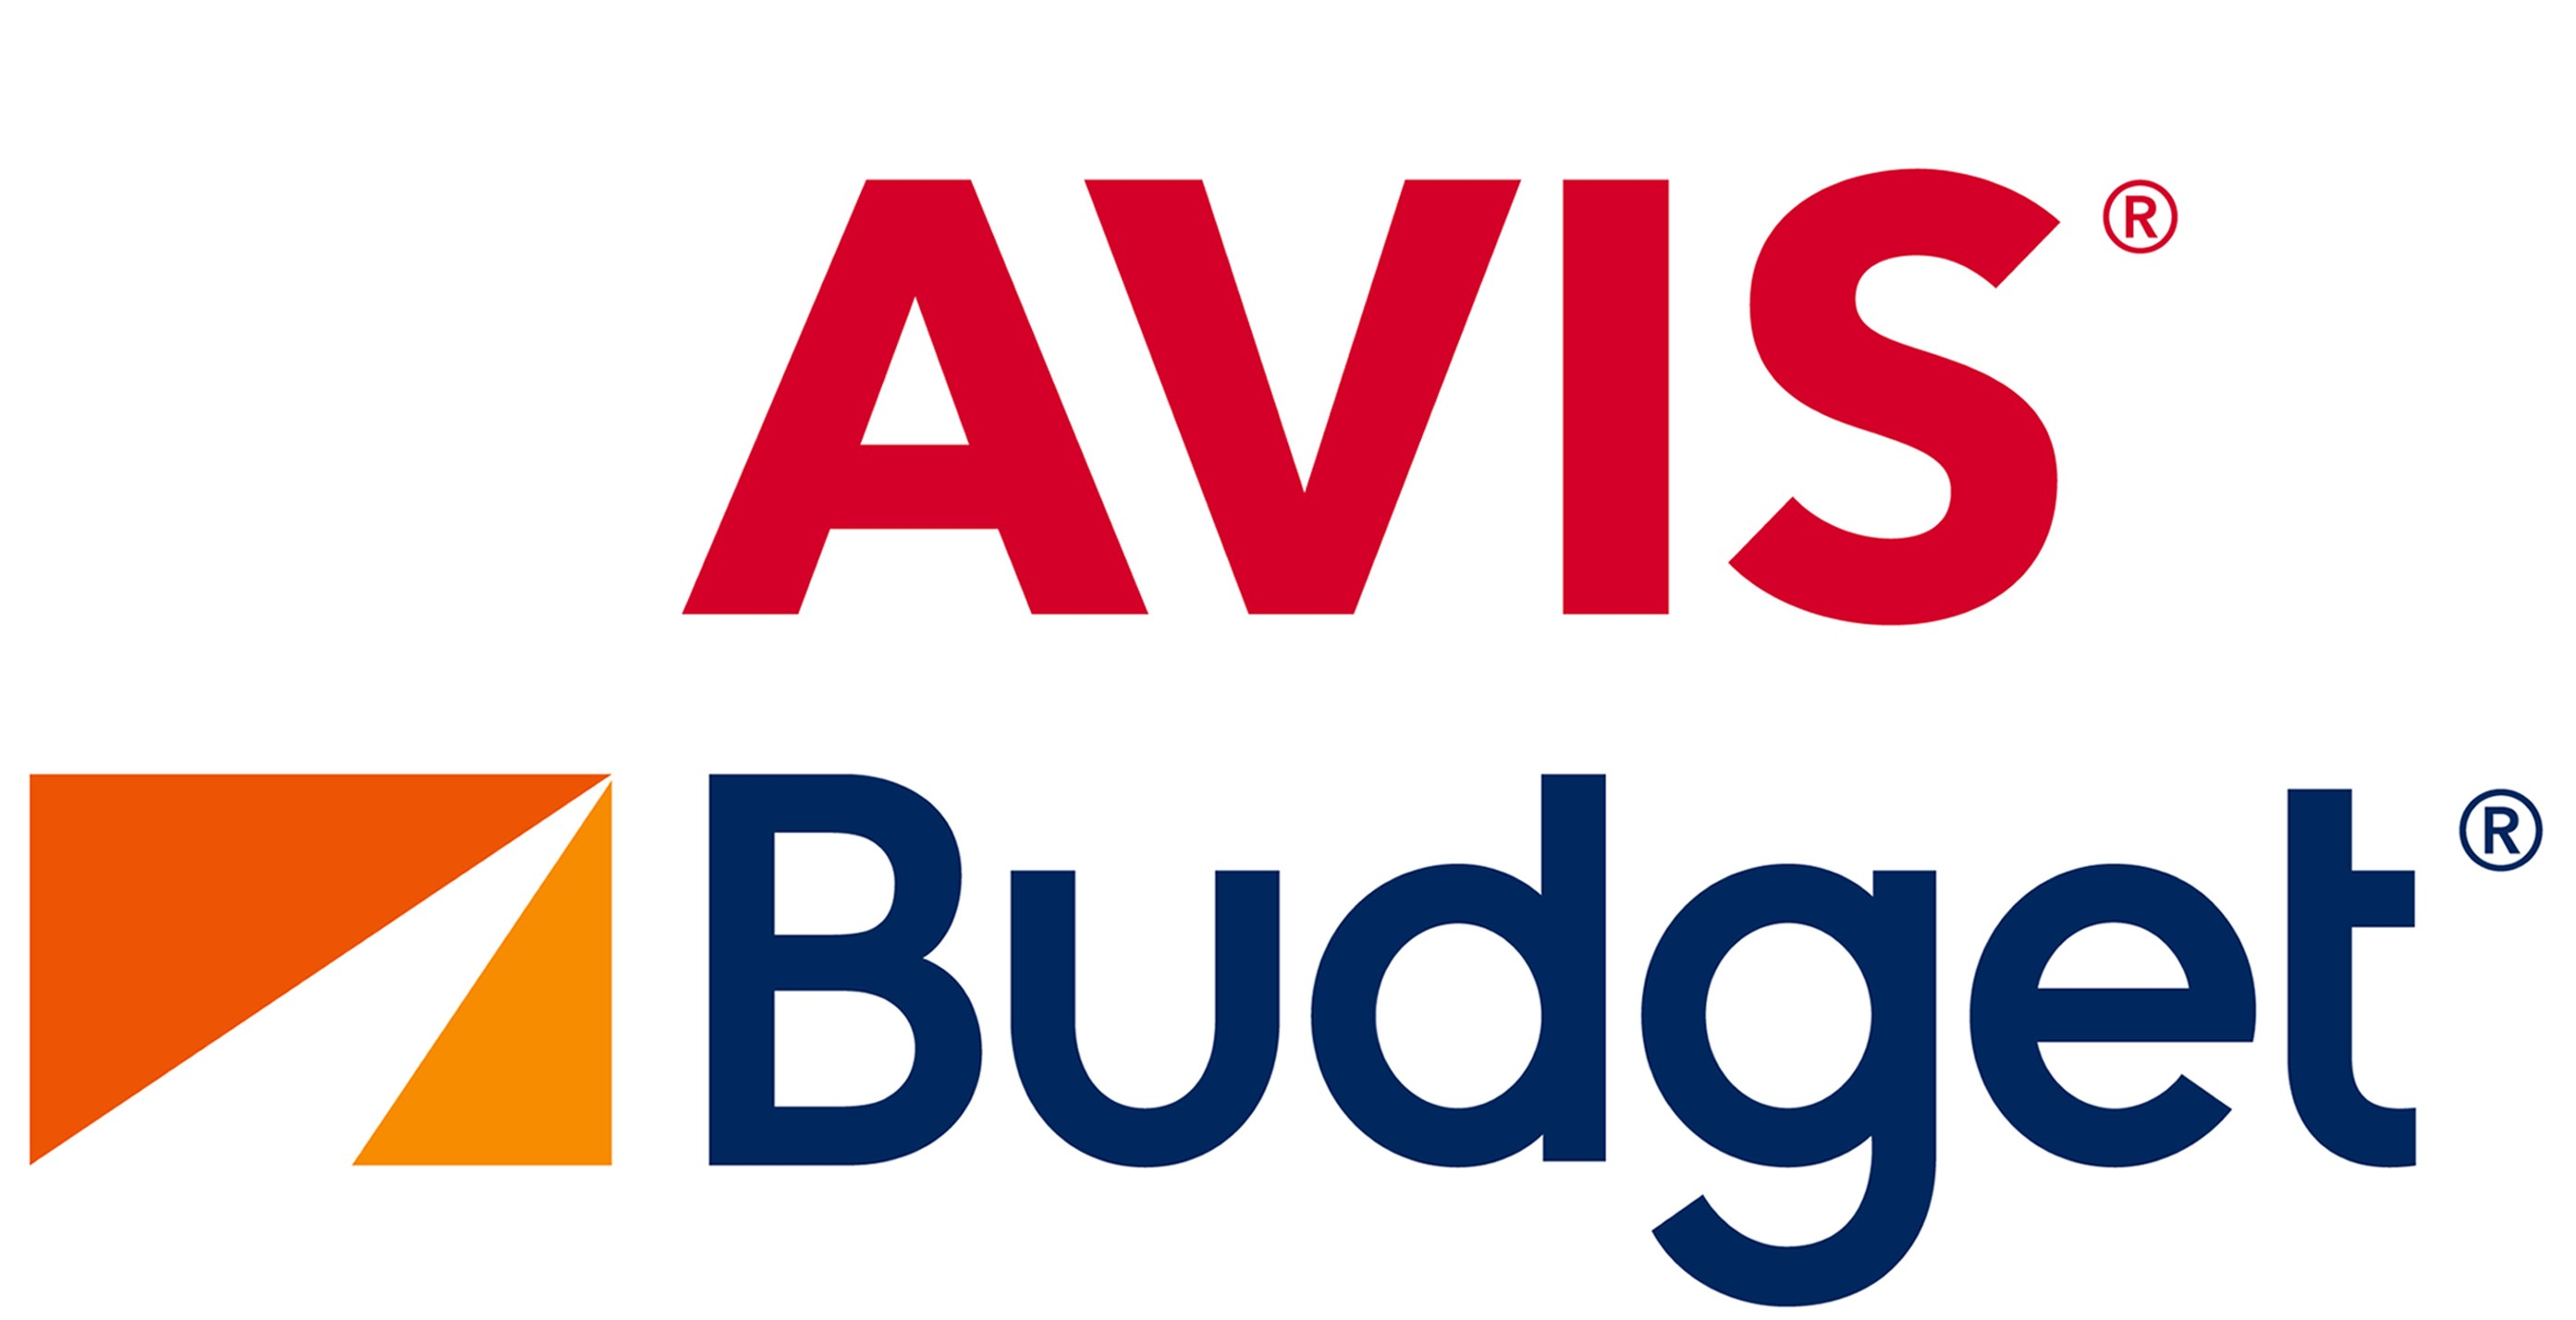 sacl_car_avis_budget_group_joined_logos